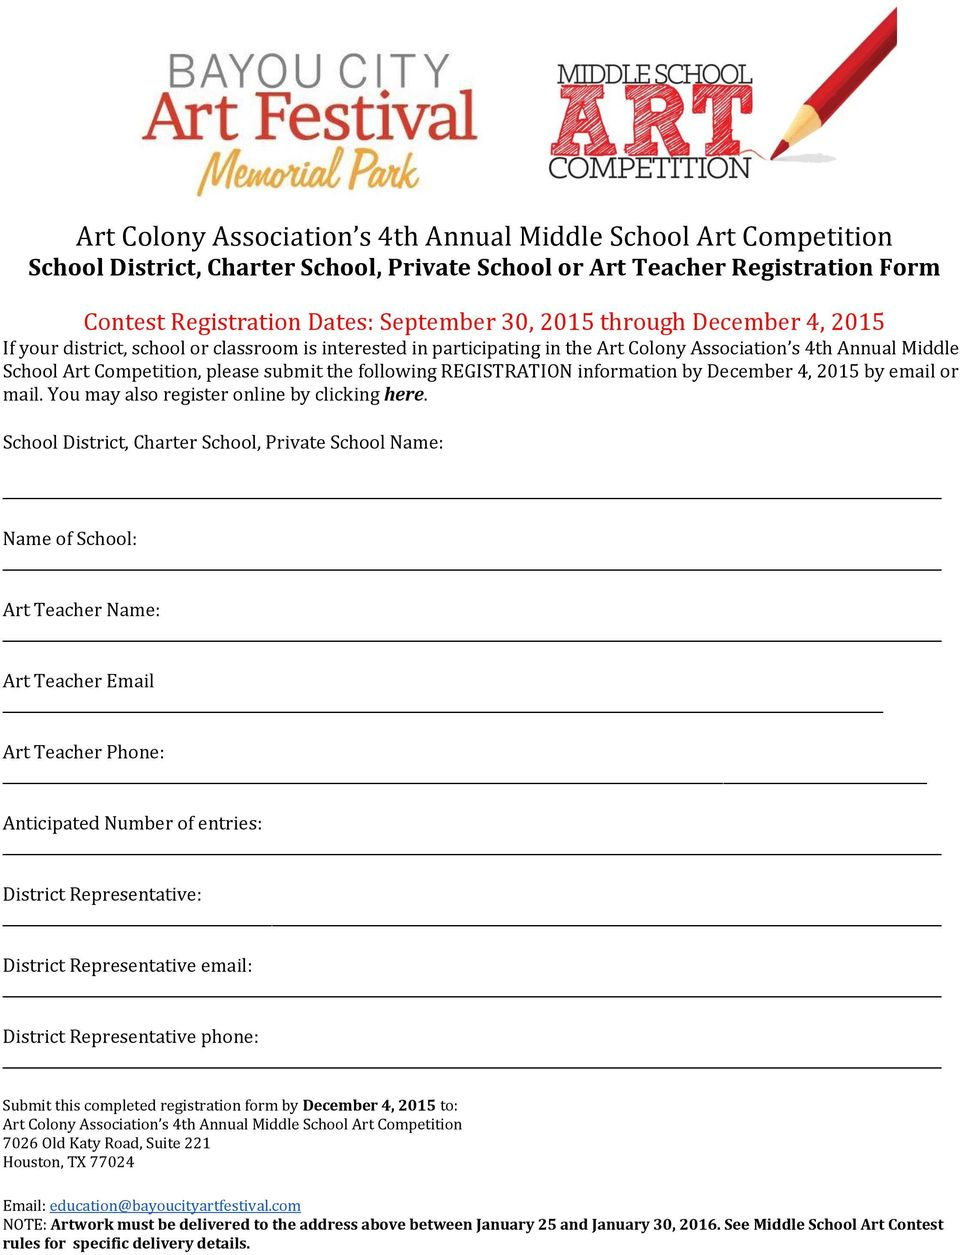 REGISTRATION information by December 4, 2015 by email or mail. You may also register online by clicking here.